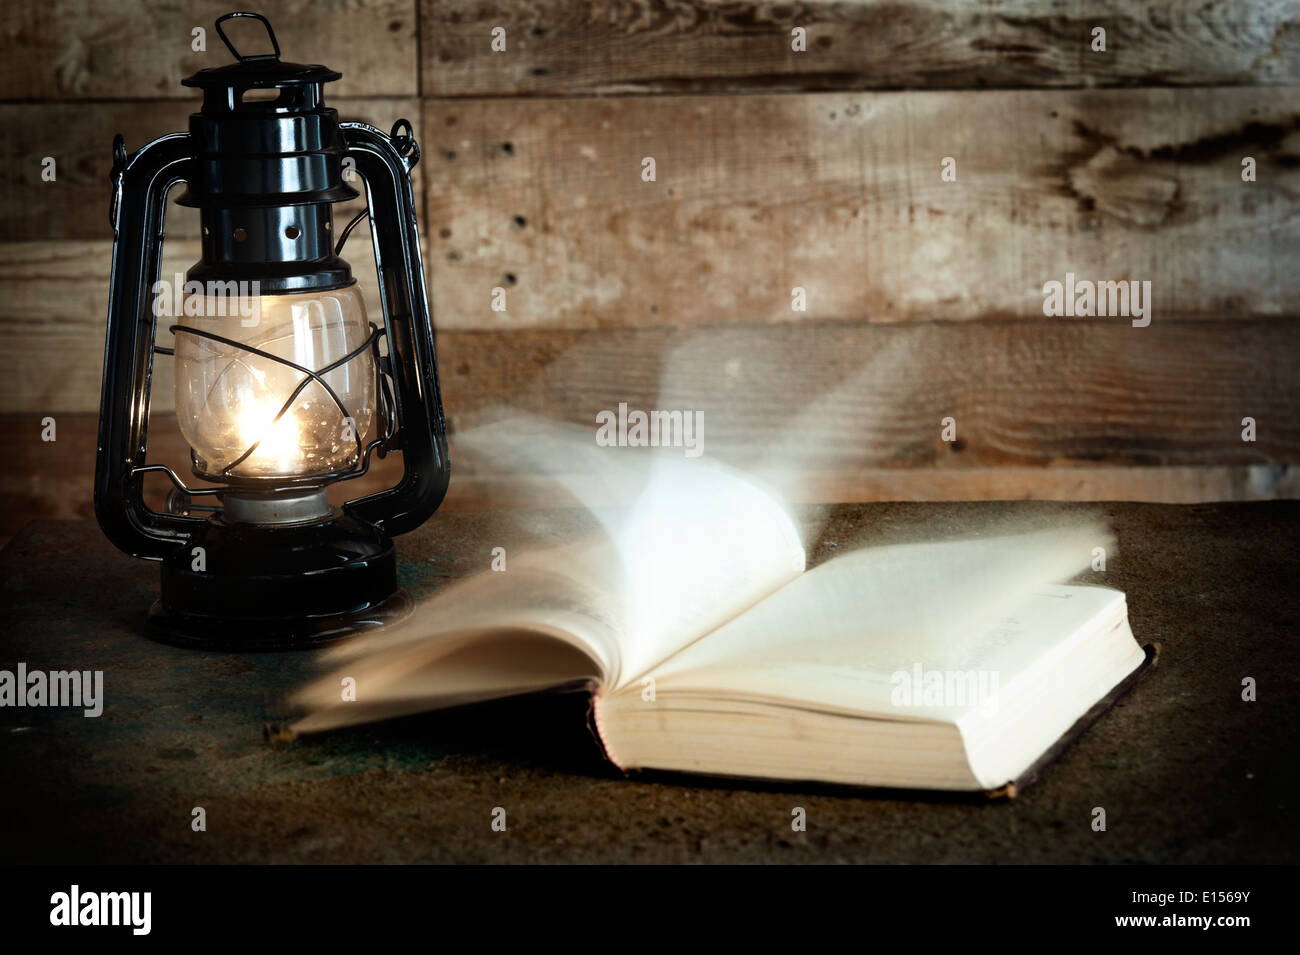 Old book and kerosene lamp on table - Stock Image